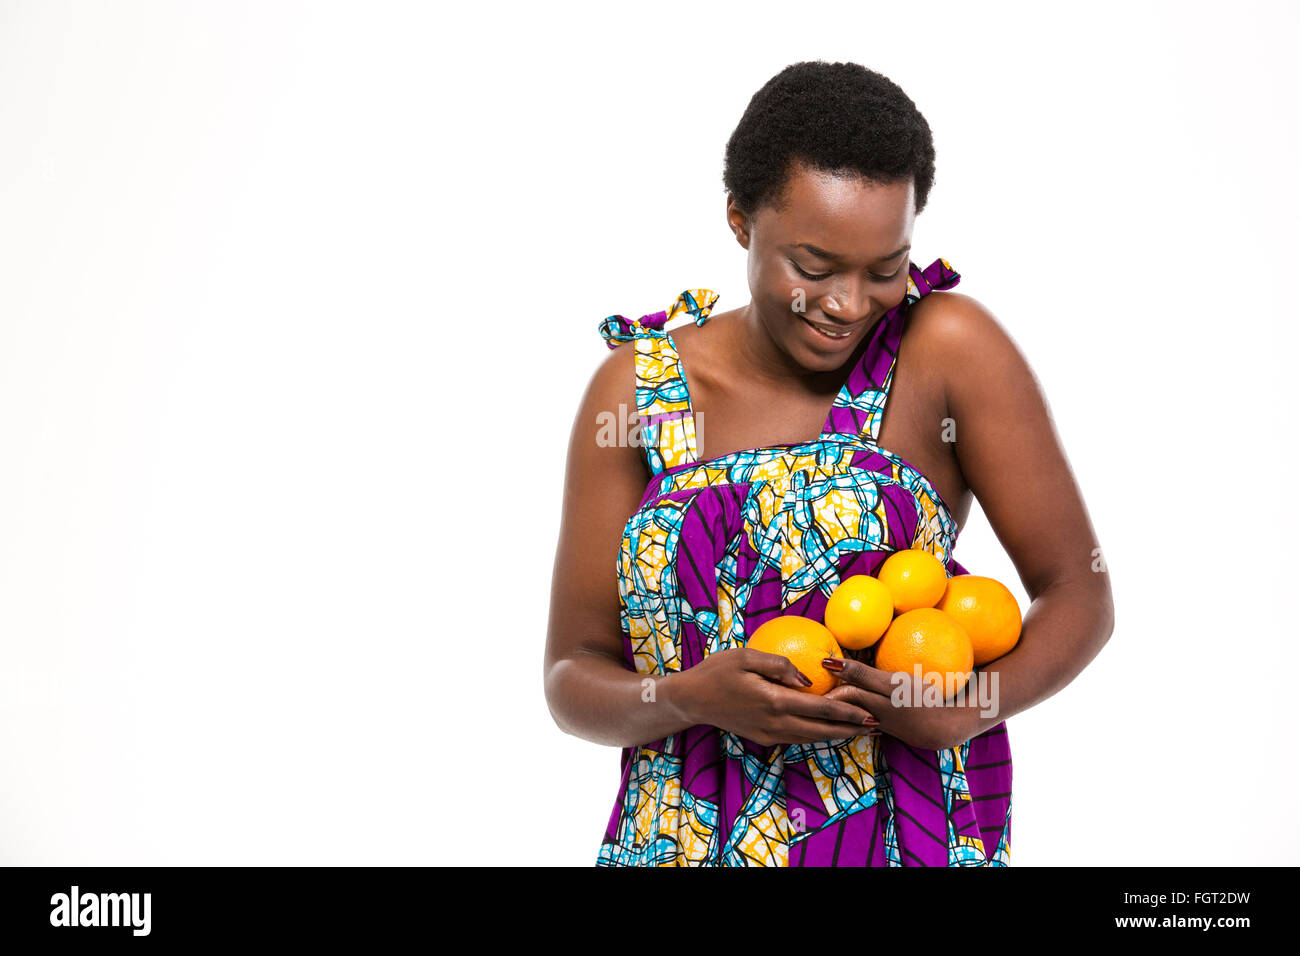 Pretty happy african american young woman in bright sundress with oranges and lemons over white background - Stock Image